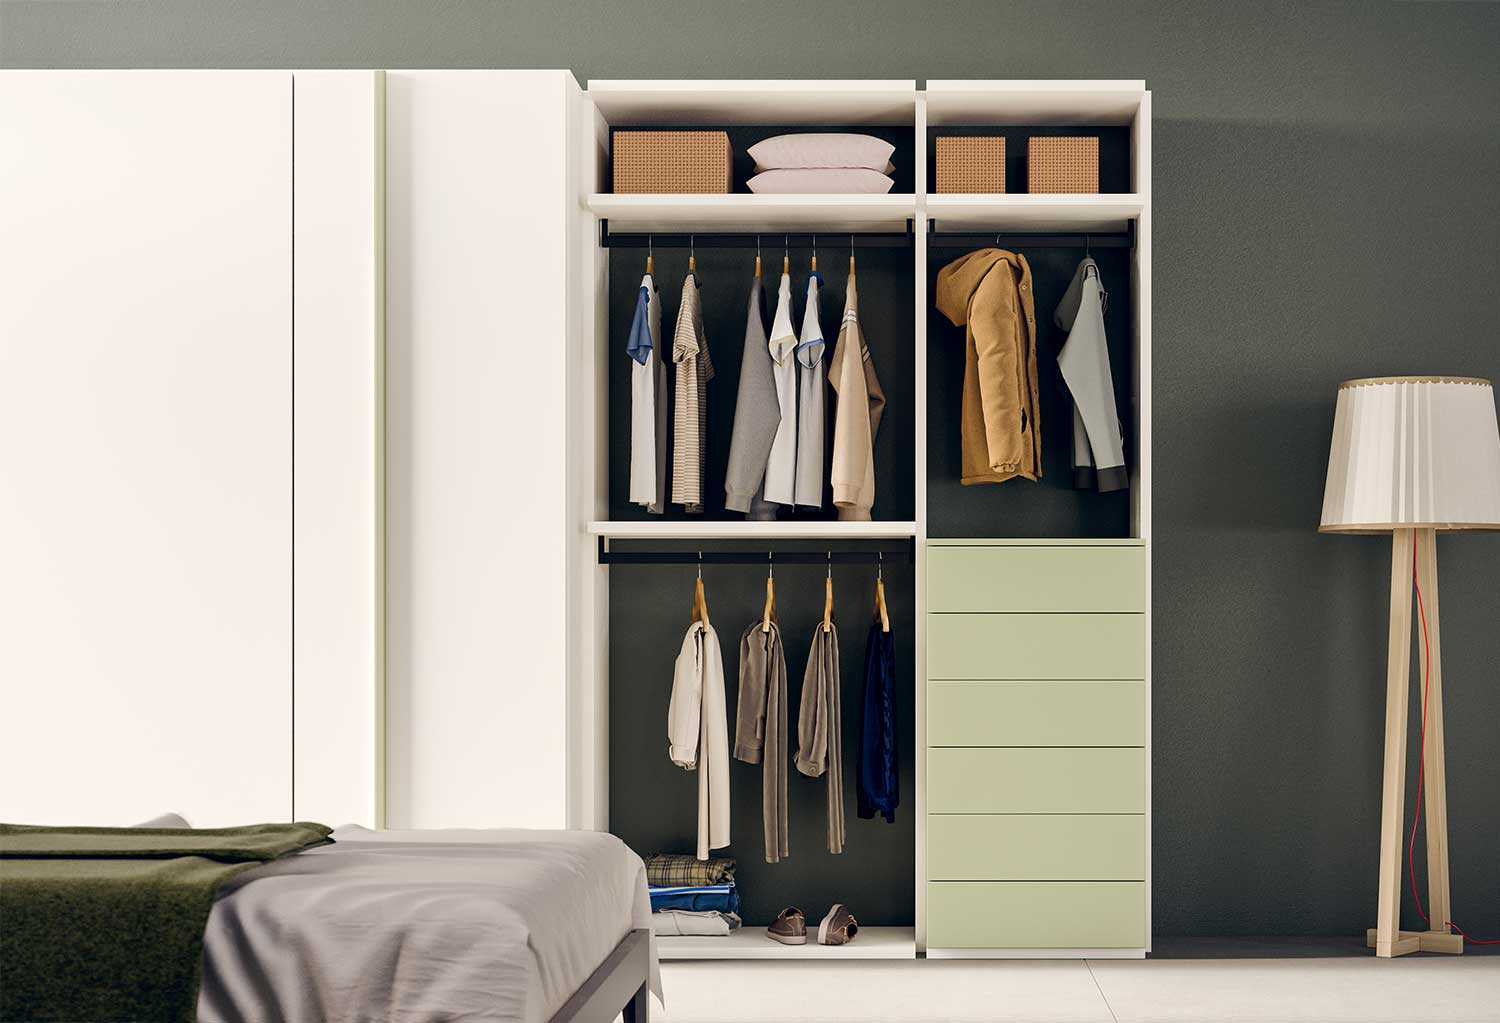 Flexy is a modular open wardrobe system for flexible, endless solutions